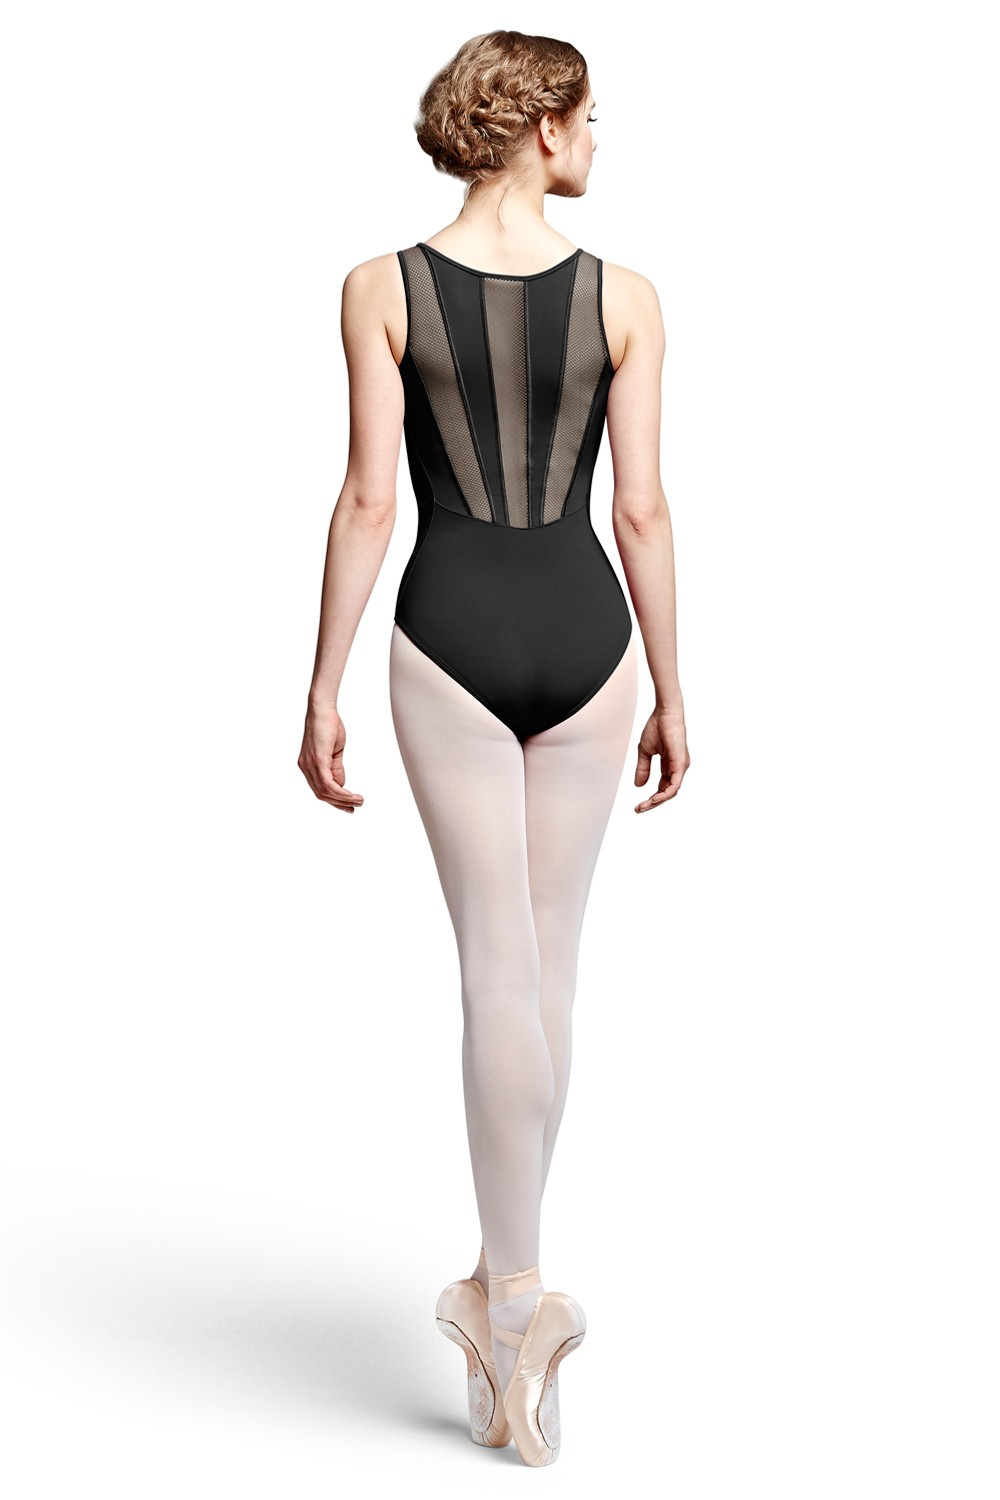 Crystal  Women's Dance Leotards